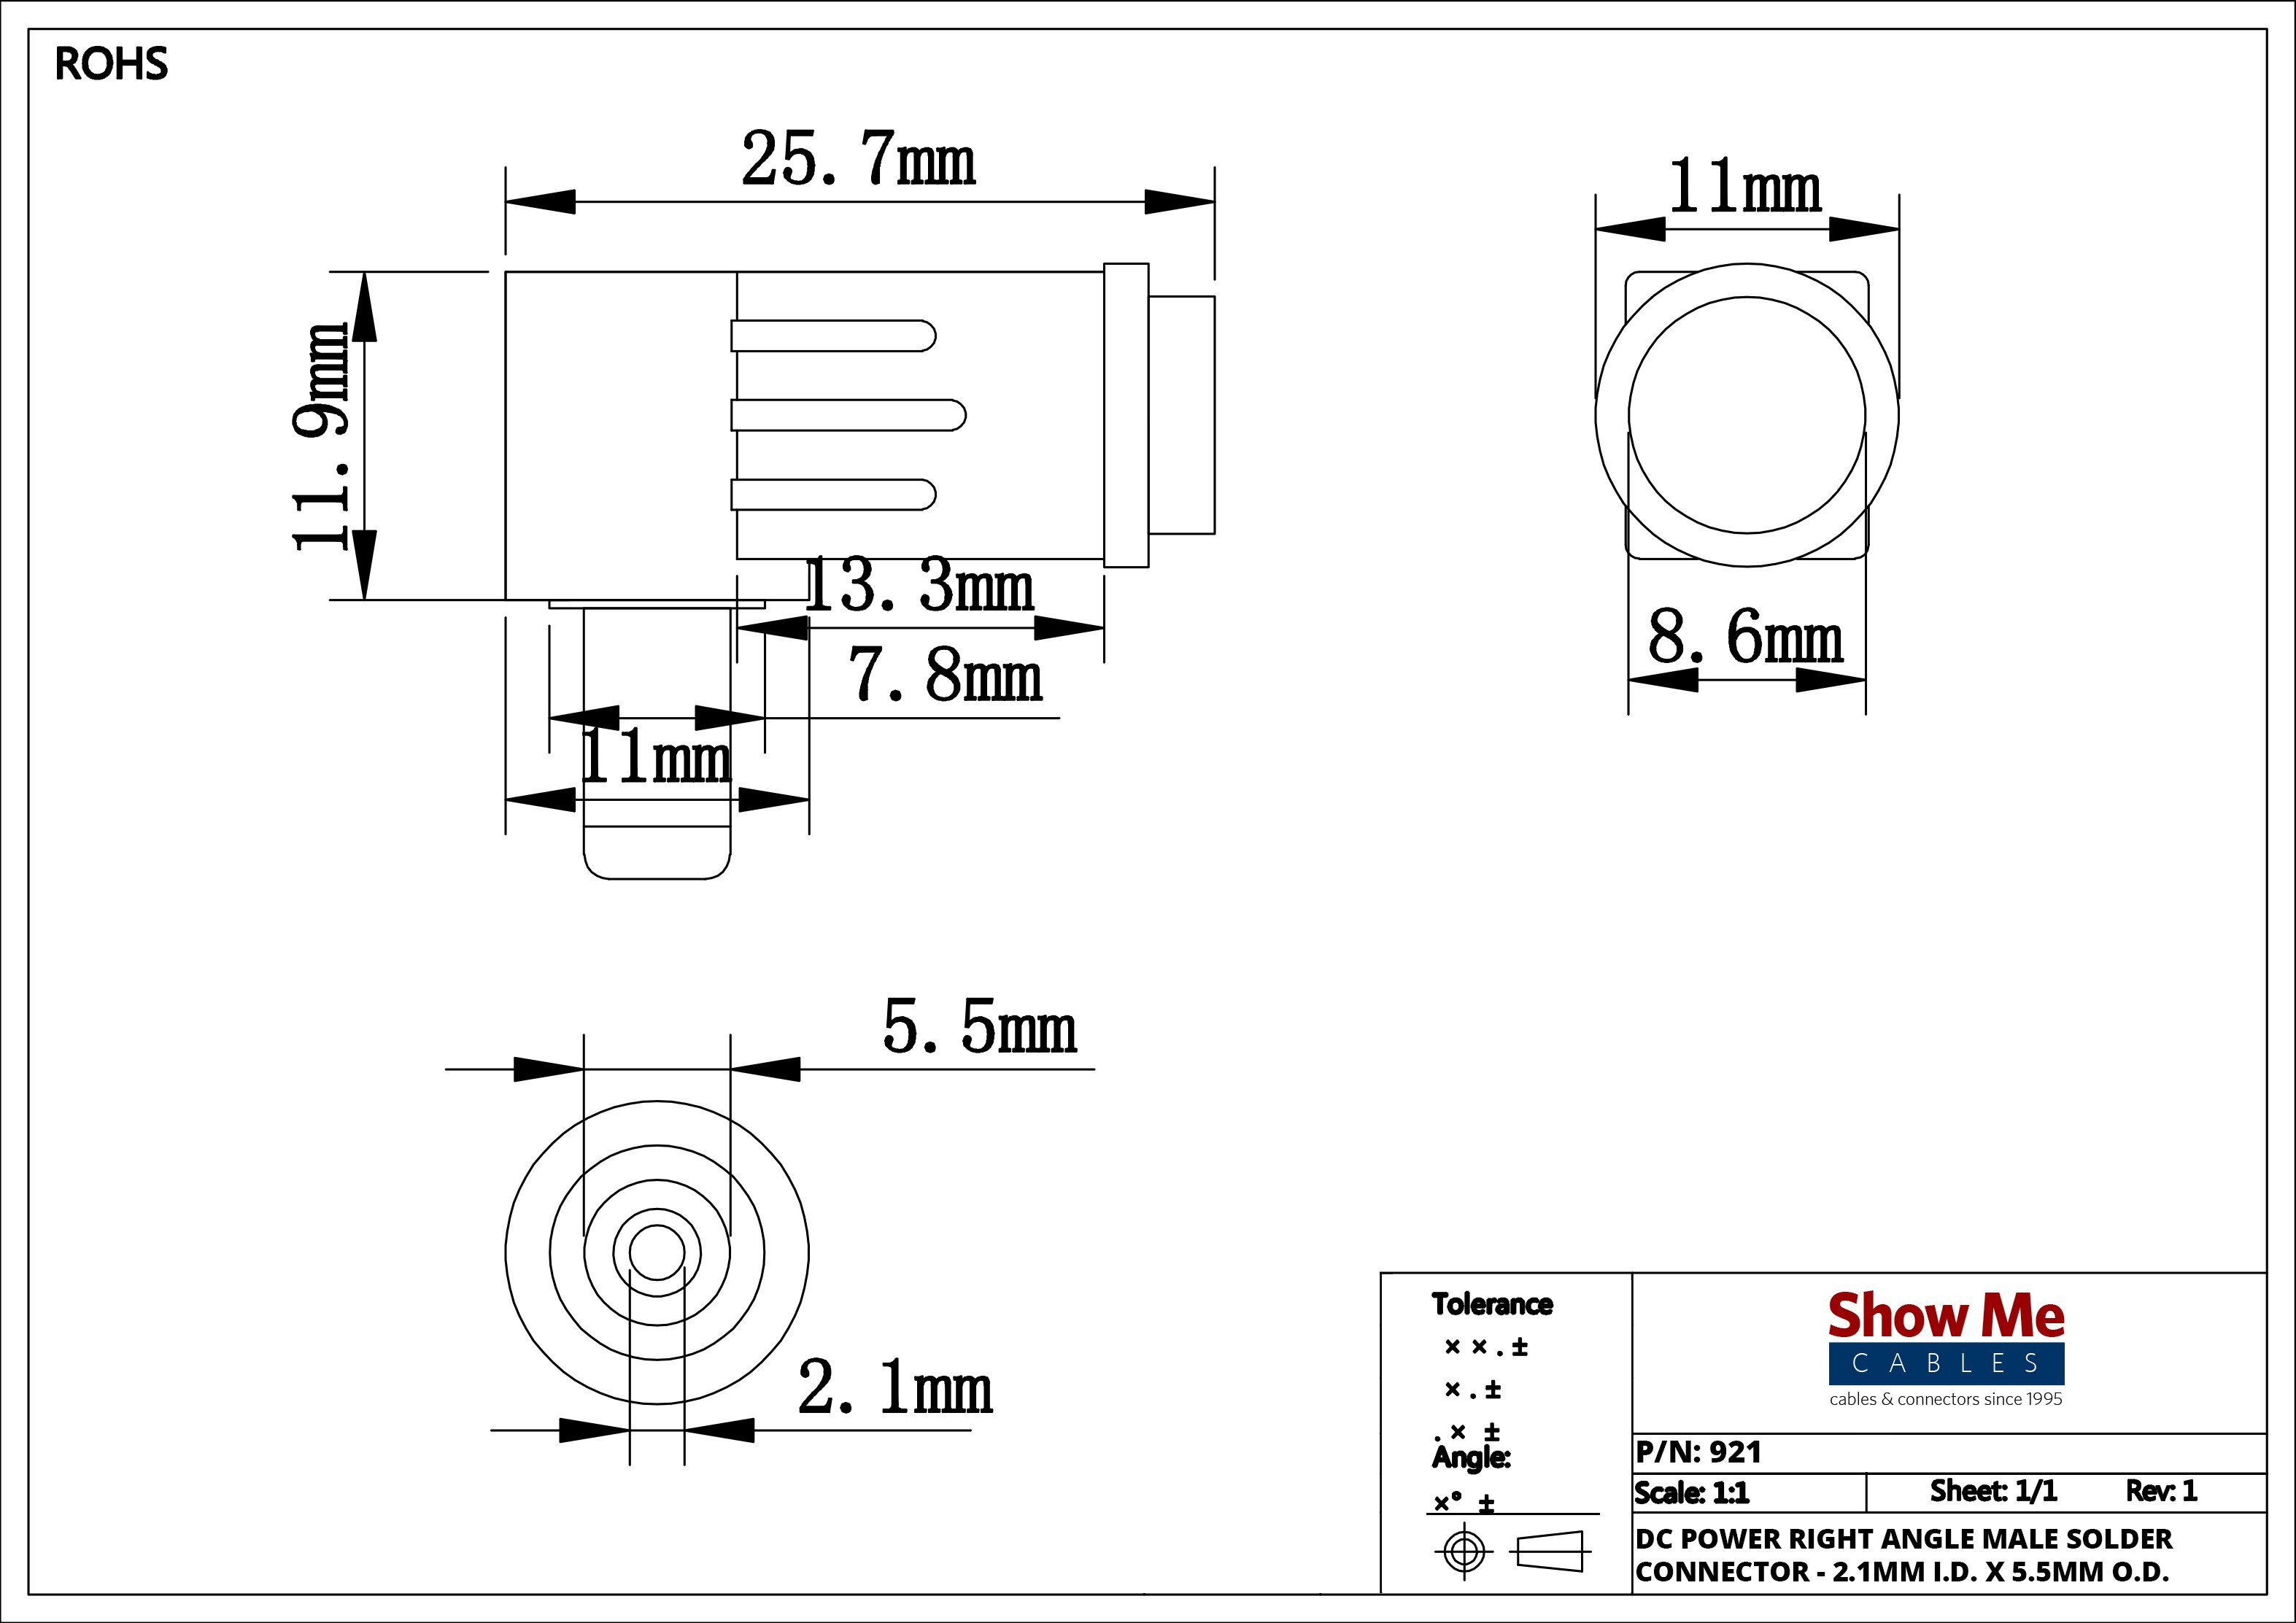 taco 006 b4 wiring diagram Download-black magic fan wiring diagram Download 3 5 Mm Jack Wiring Diagram Fresh 2 5mm 2-i